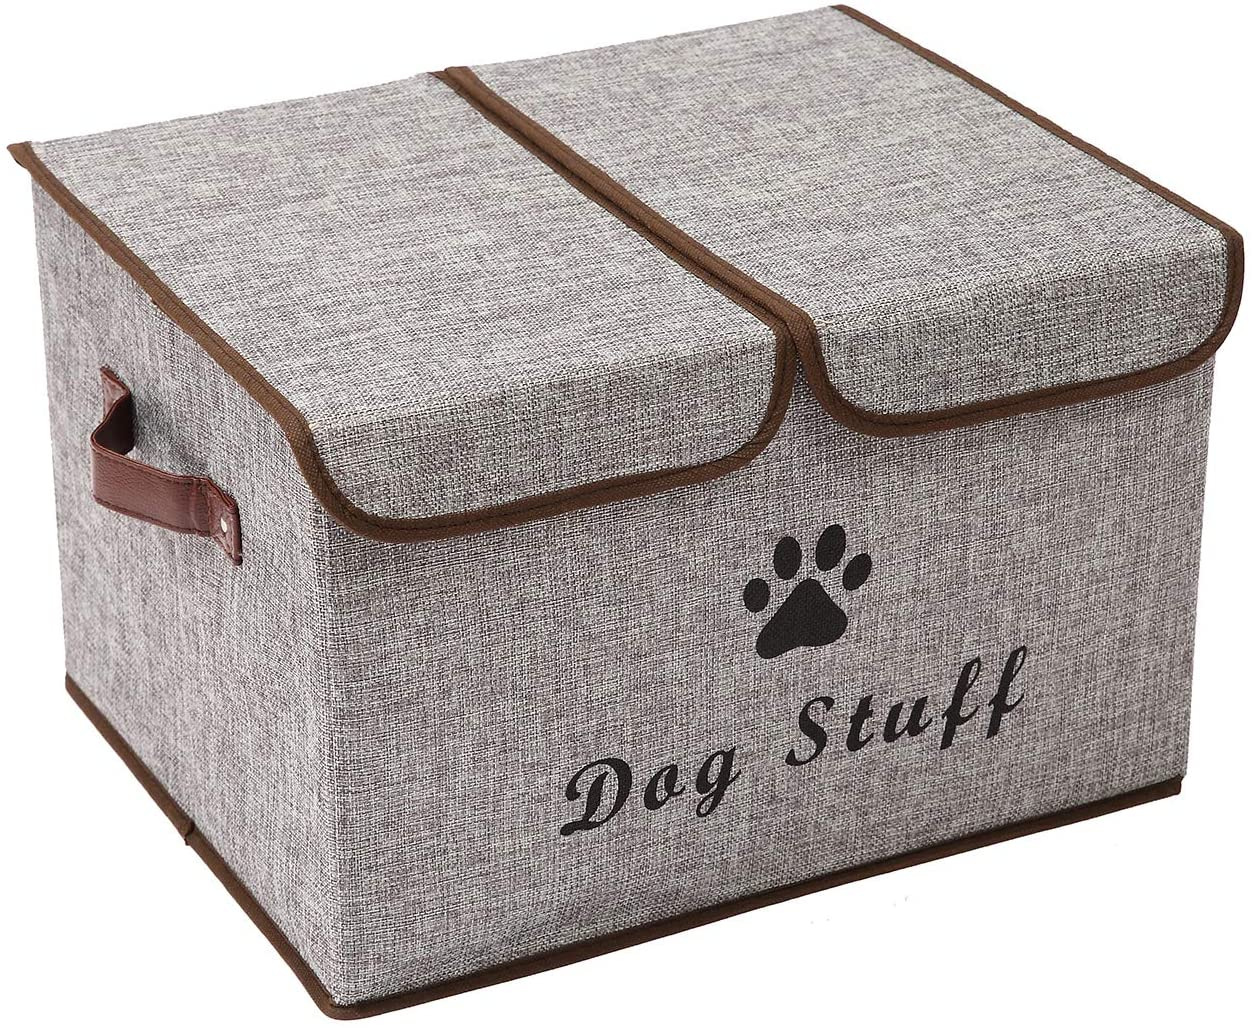 Xbopetda Linen Fabric Box with lid and Handles Foldable Dog Storage Cubes Box,Great for Dog Apparel & Accessories-Grey